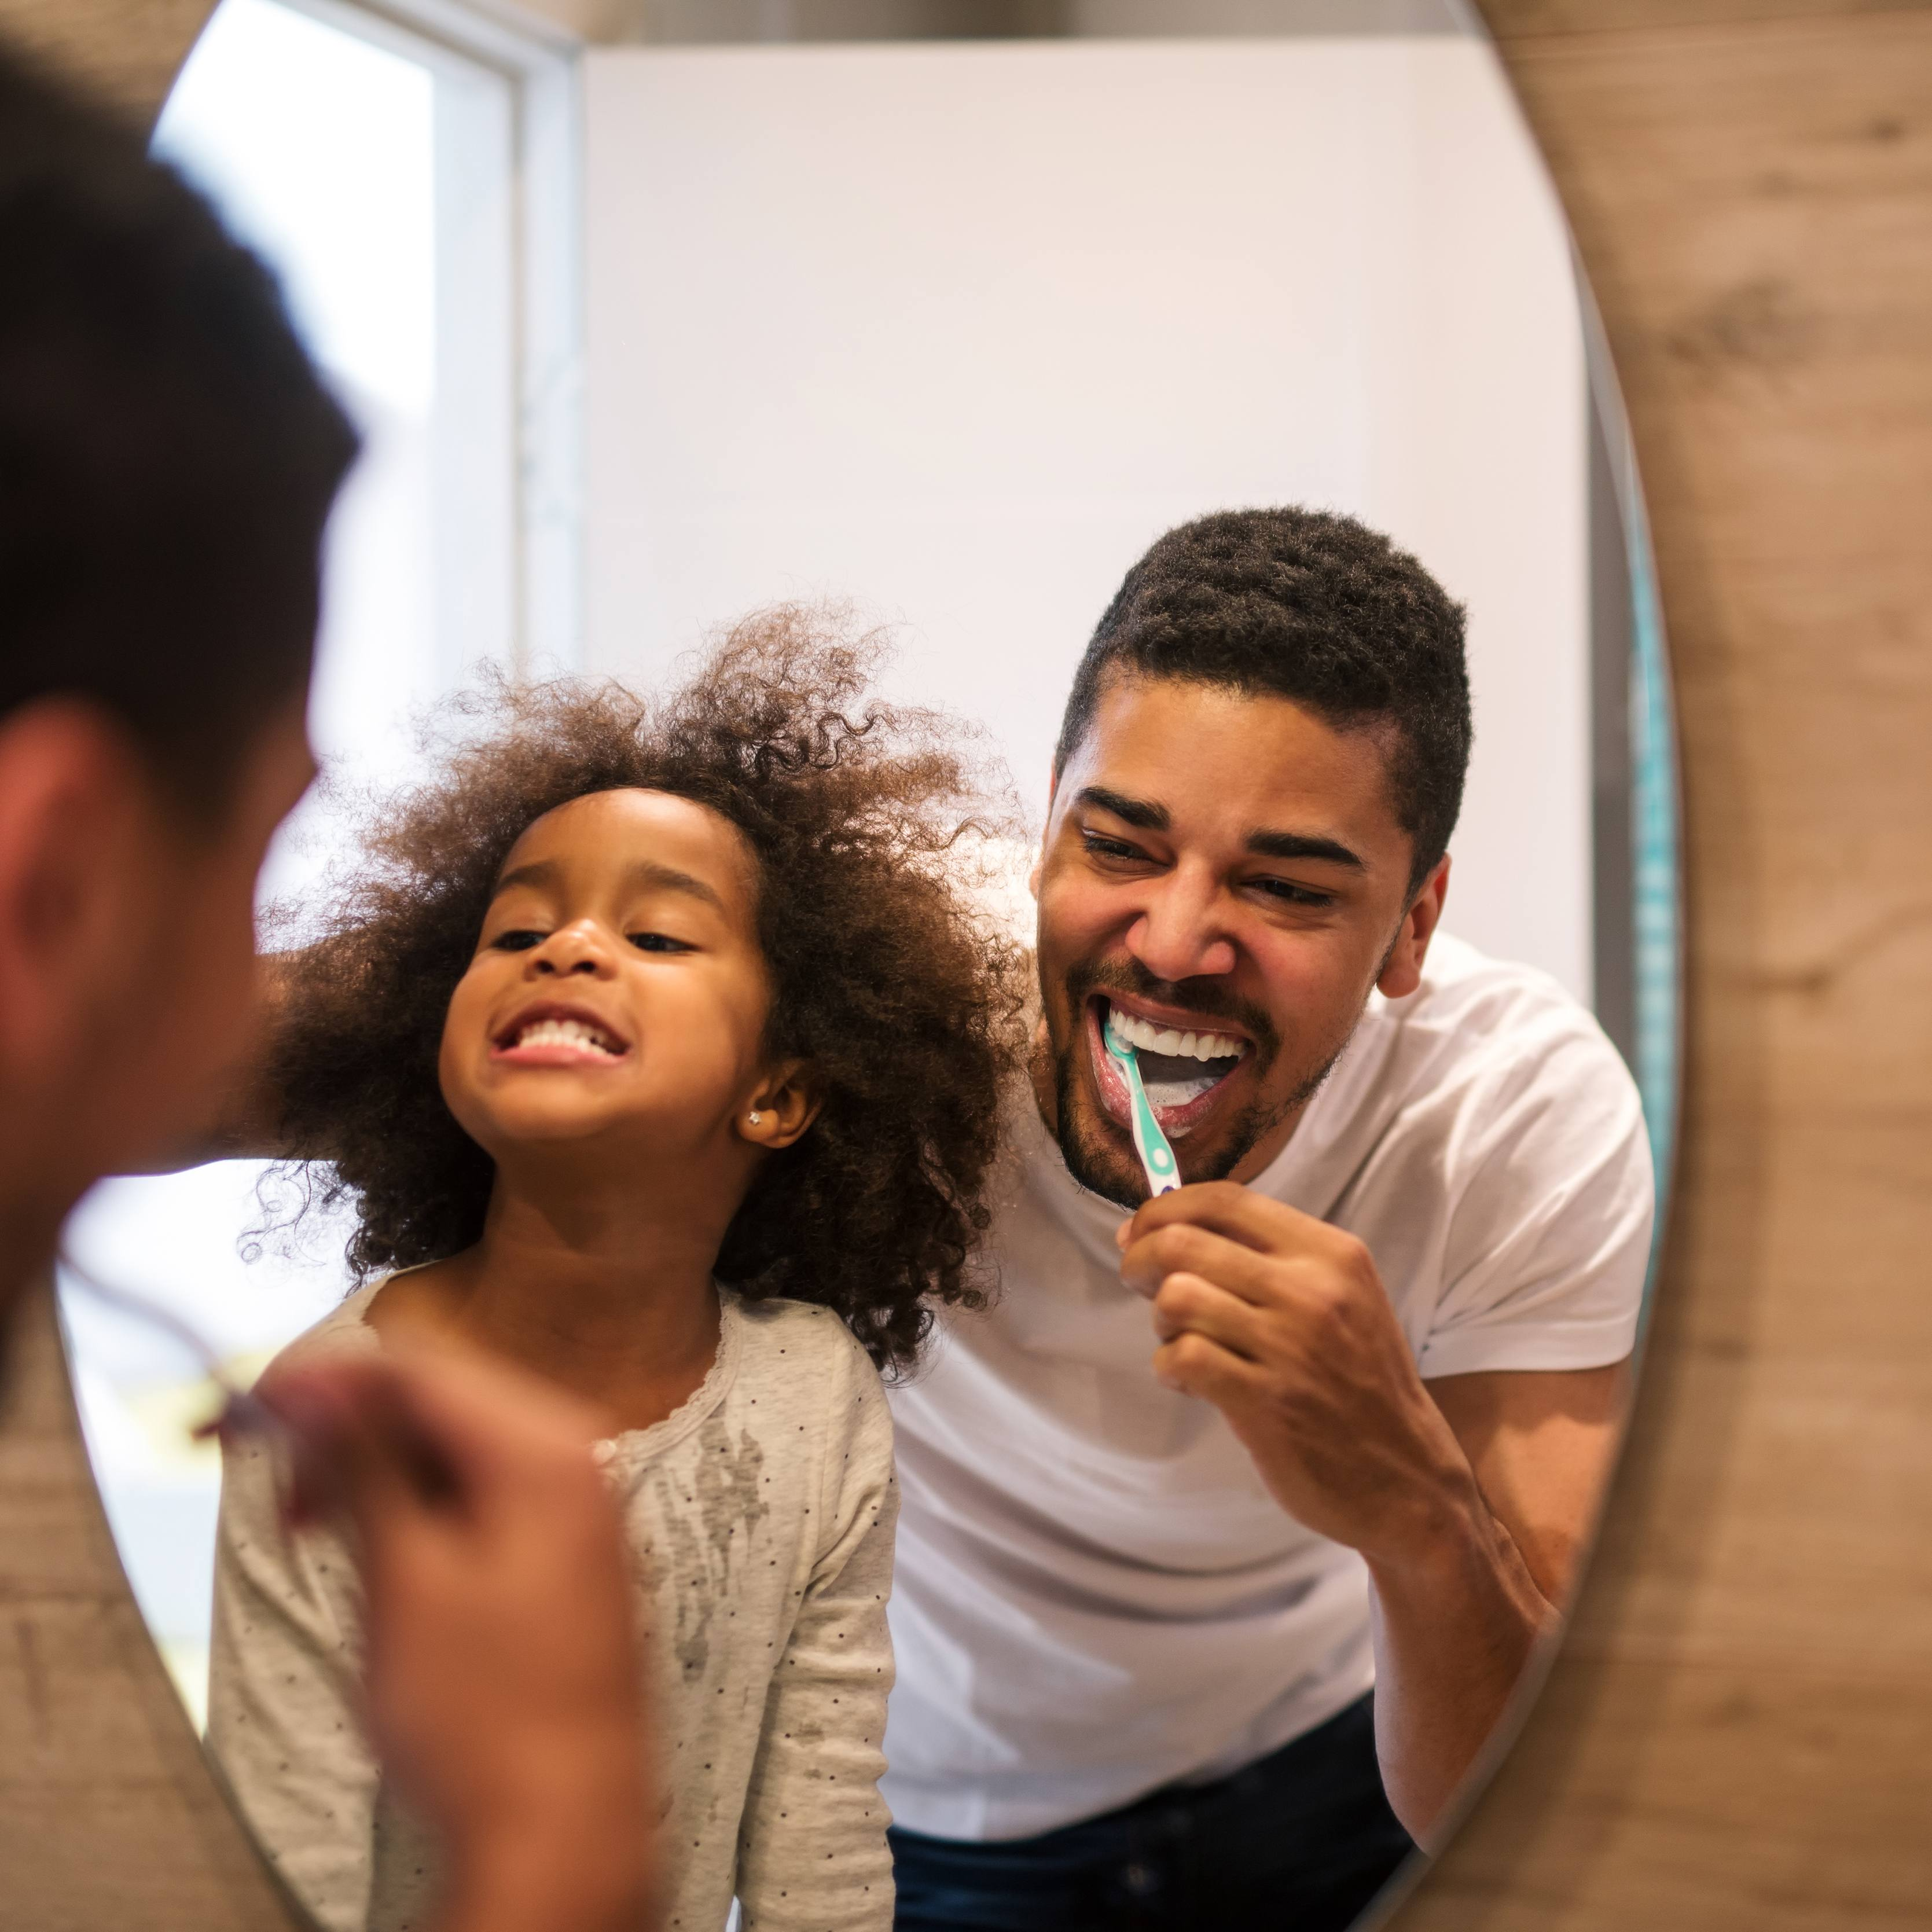 a father and young daughter brushing their teeth and looking into a mirror together